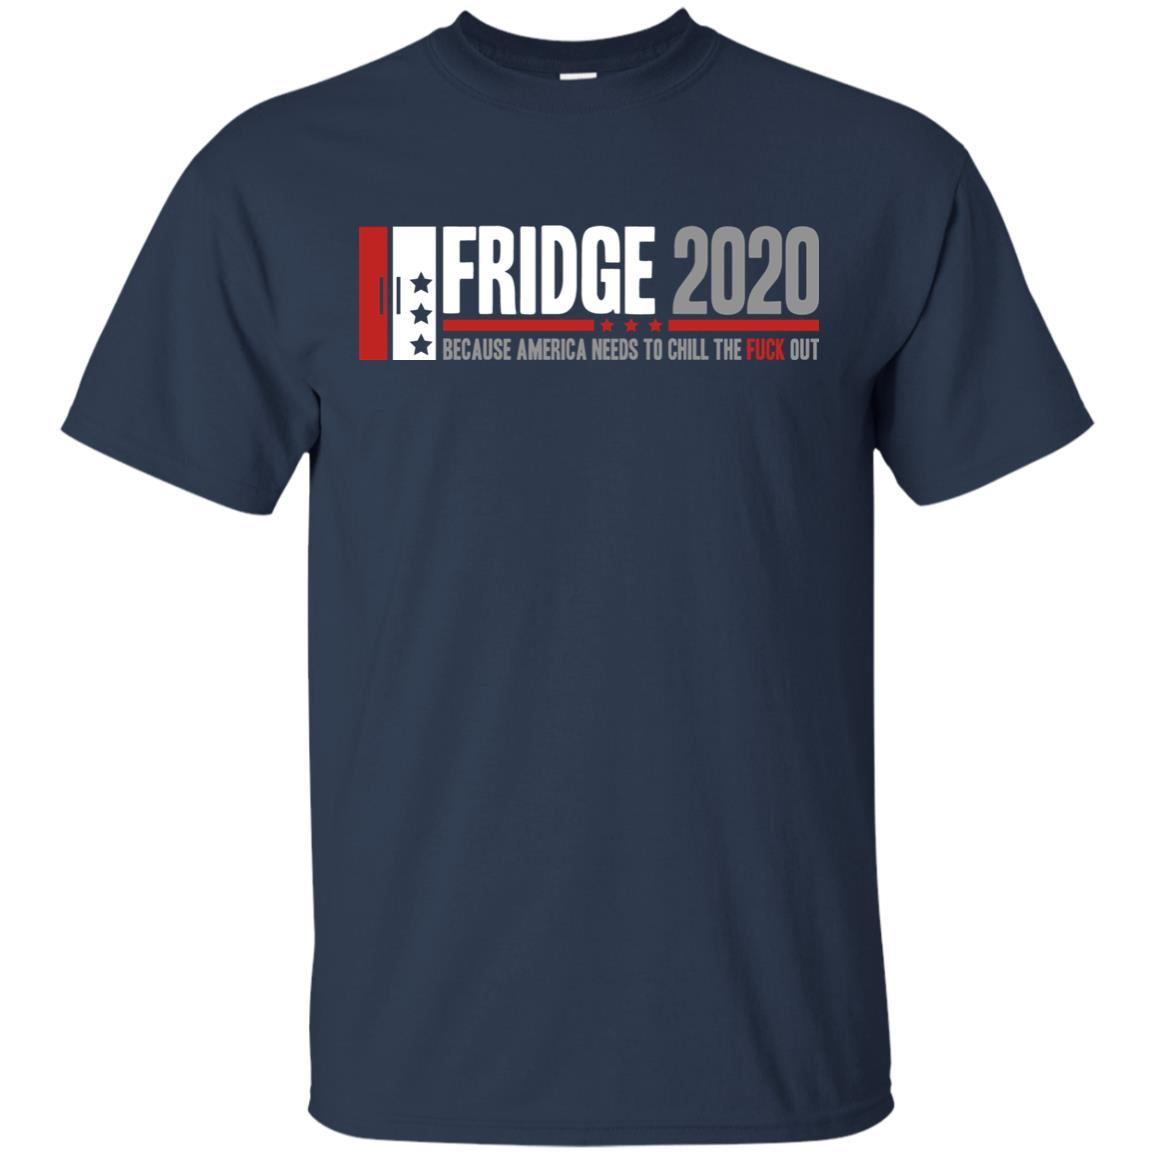 T-Shirts - Fridge 2020 Unisex Tee